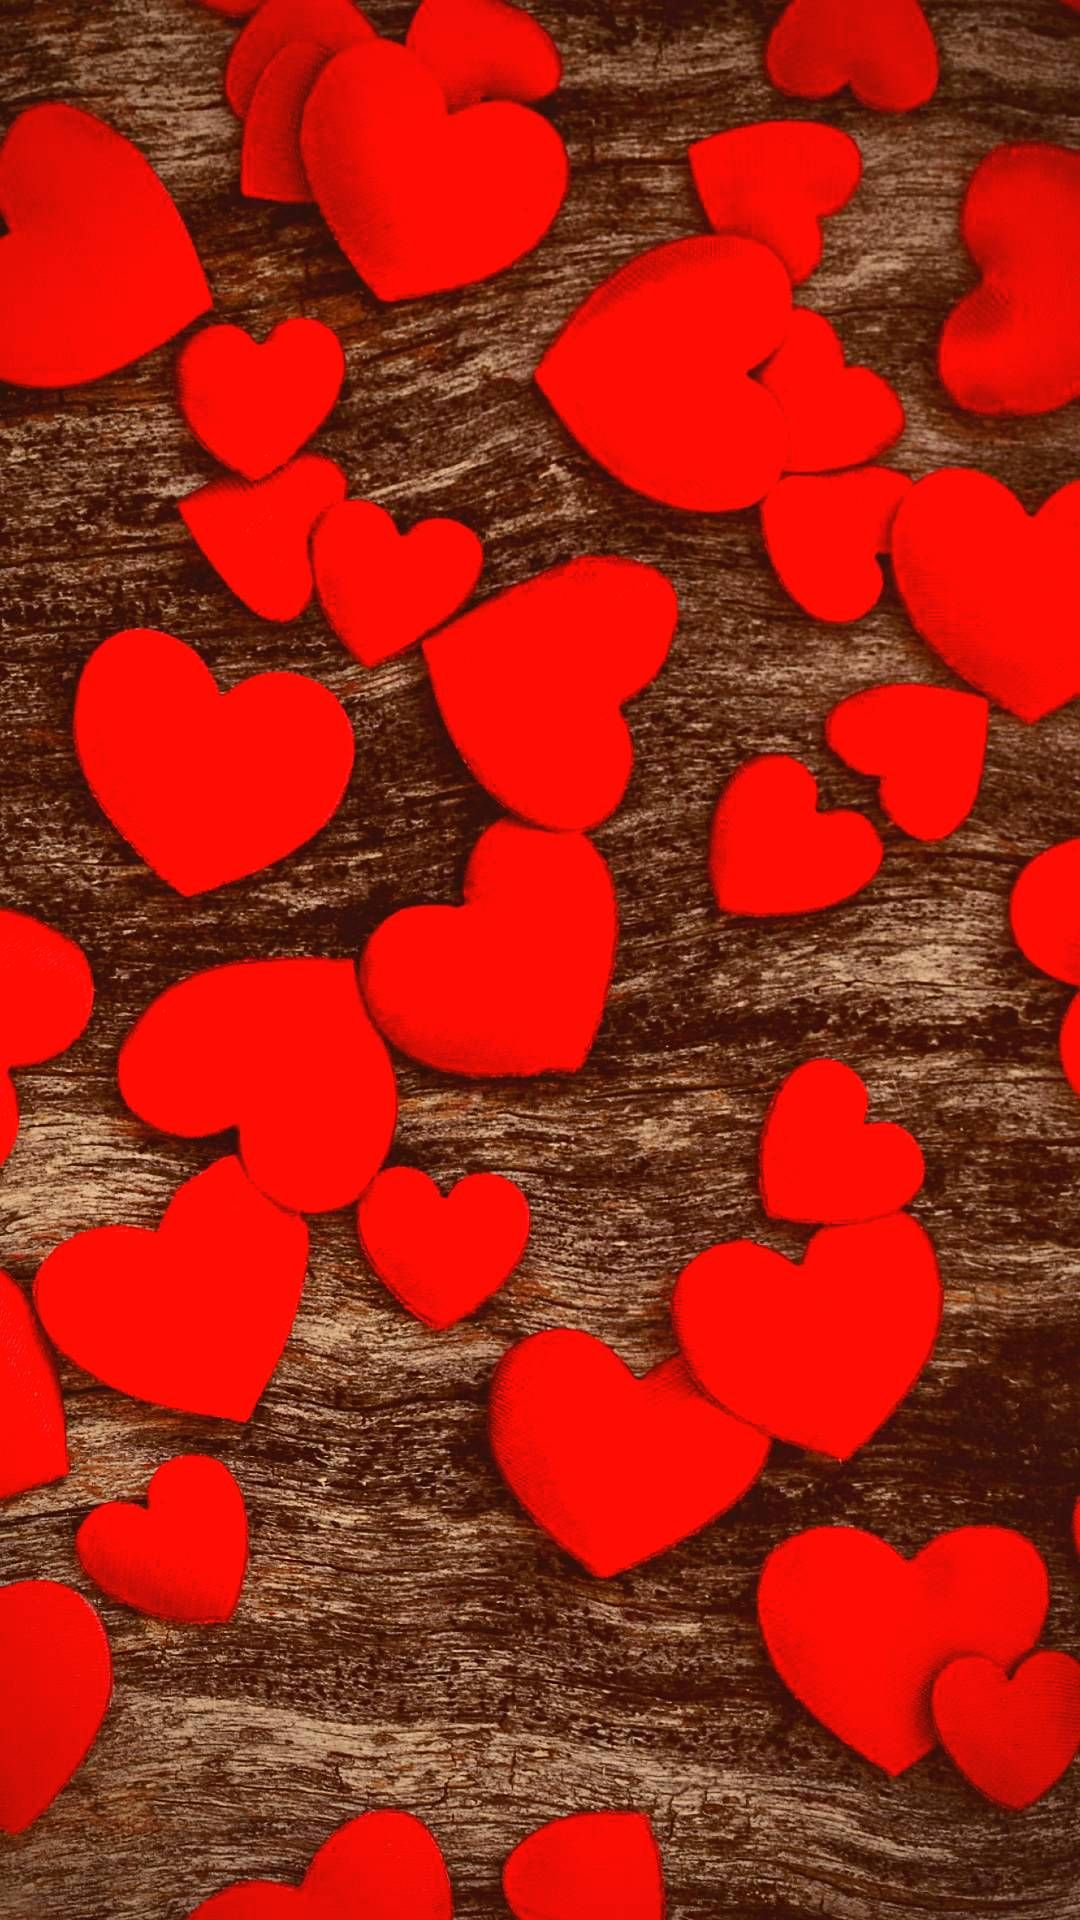 Hearts On Wooden Love Hd Wallpapers 1080x1920 Wallpaper 1080x1920 Love Hd Wallpaper Note 10 Wallpaper